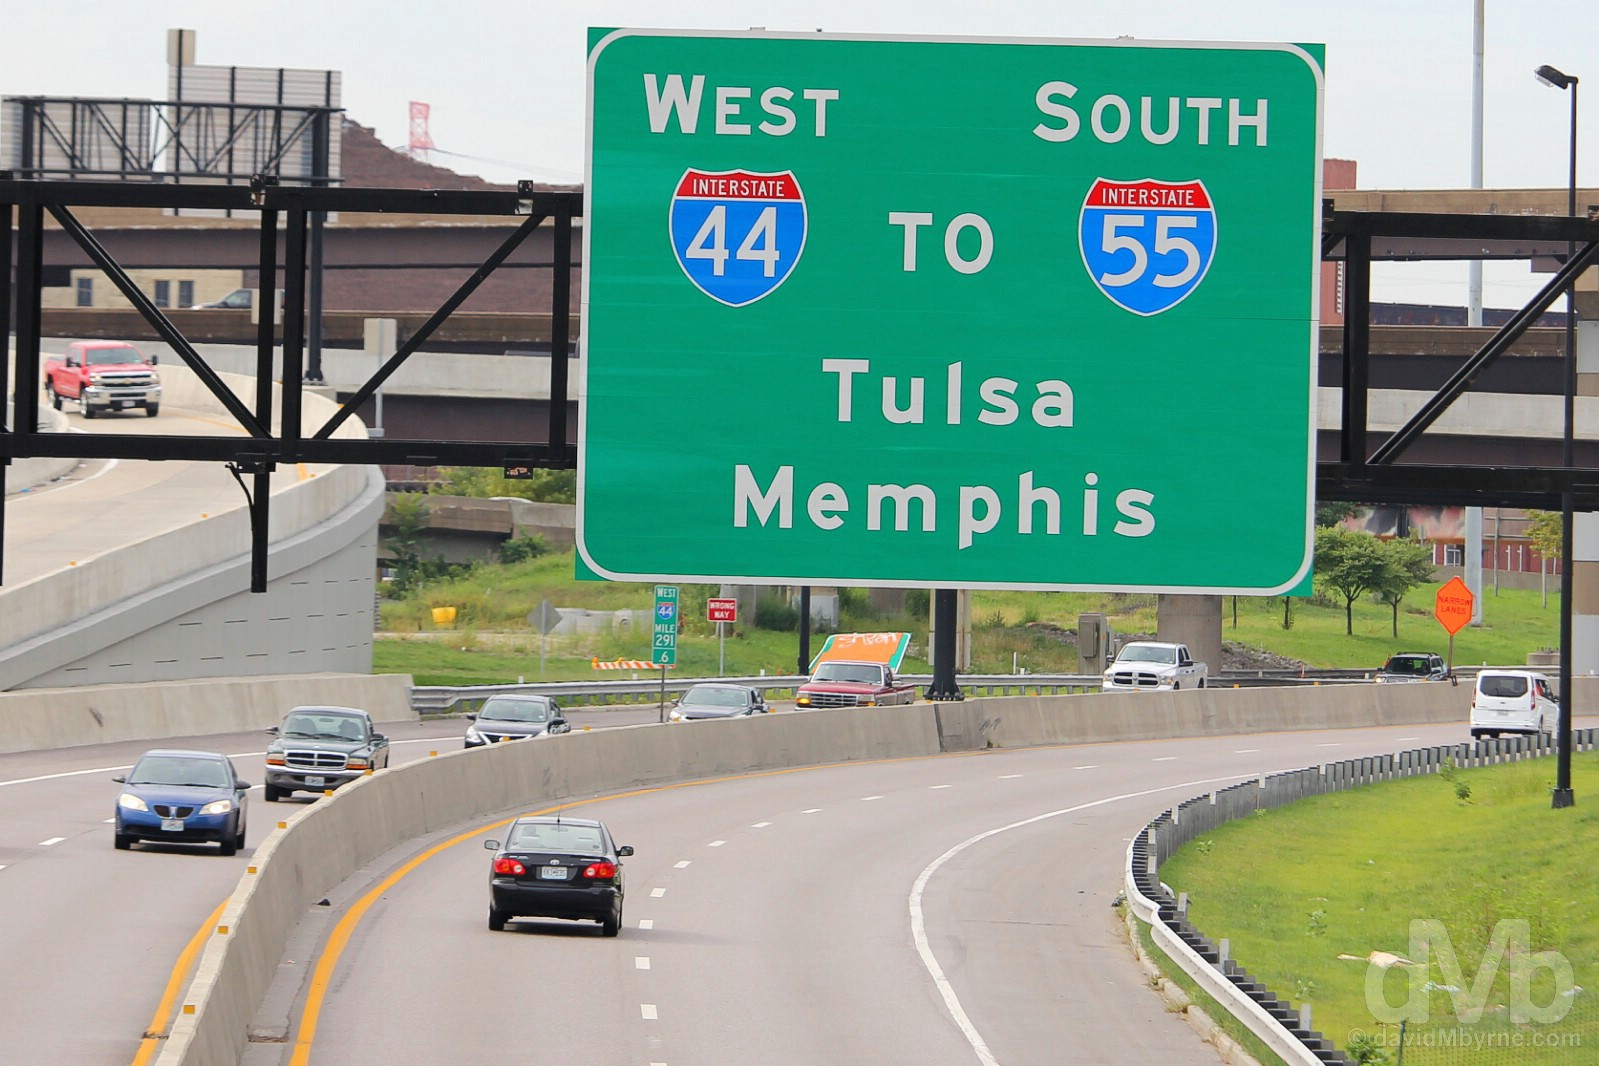 Interstate 55 south from St. Louis, Missouri, to Memphis, Tennessee. September 18, 2016.